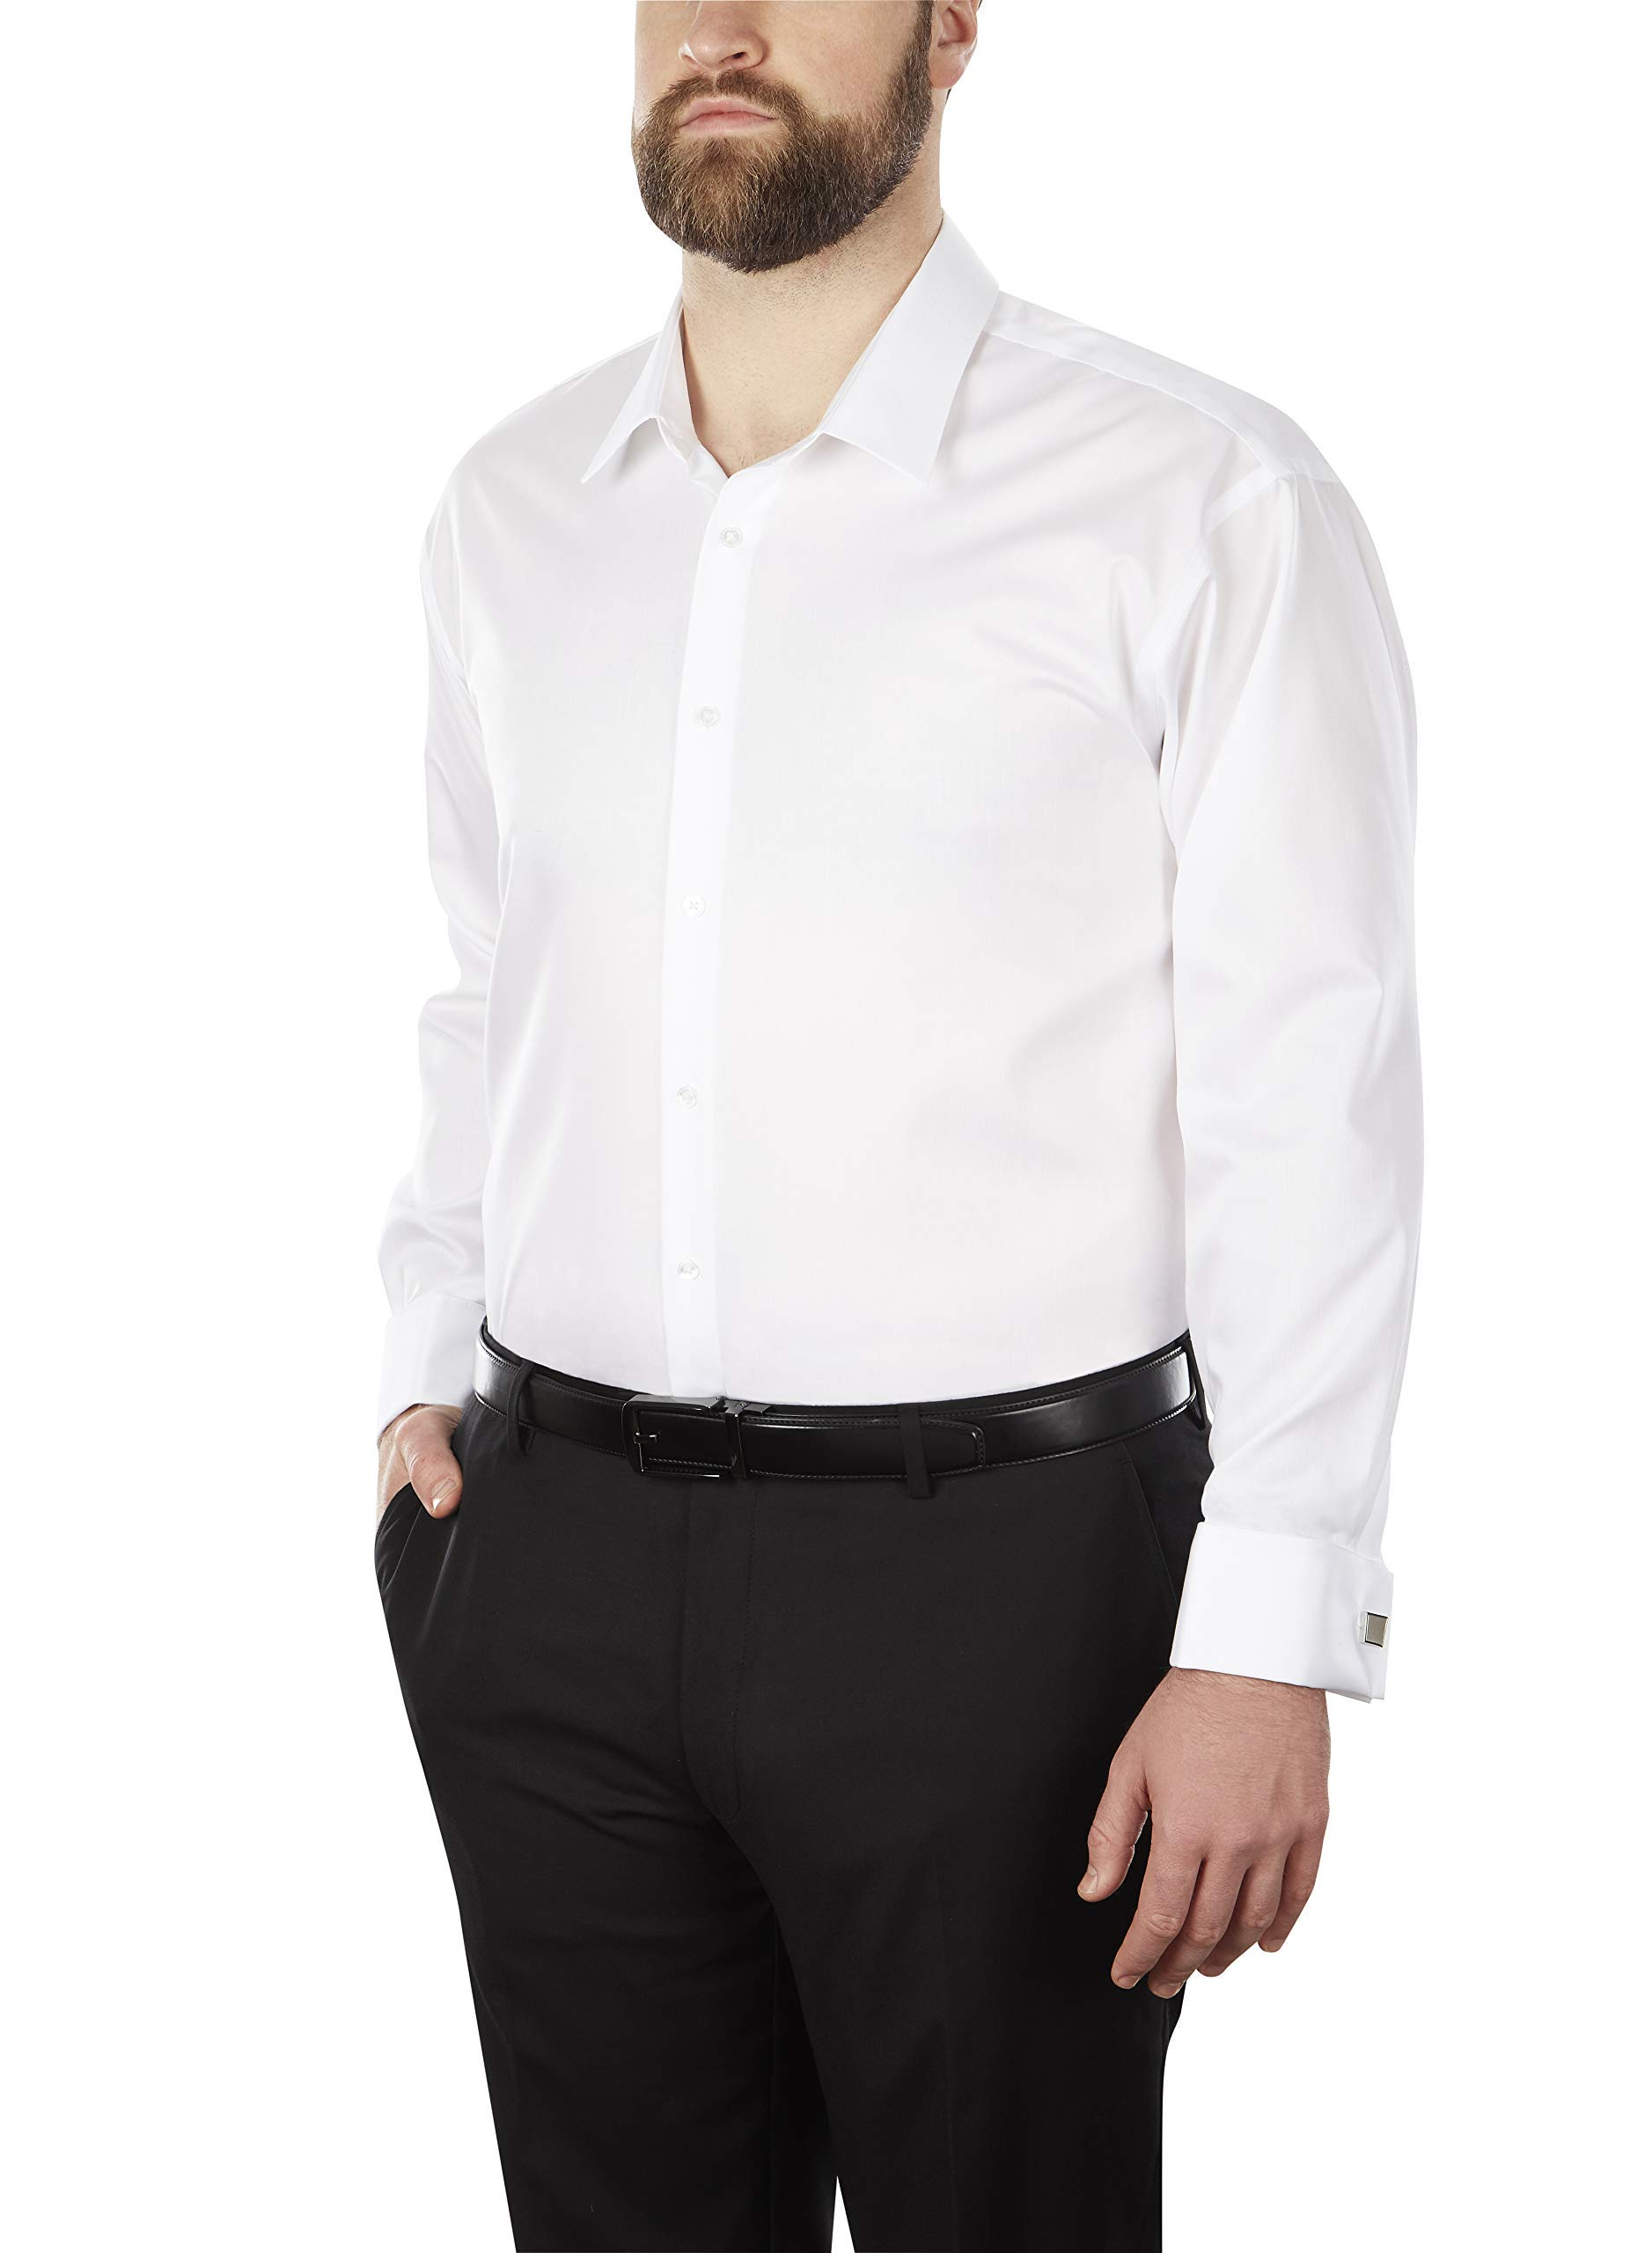 Calvin Klein Men's Big and Tall Dress Shirt Non Iron Solid, White, 17.5'' Neck 36''-37'' Sleeve (X-Large)